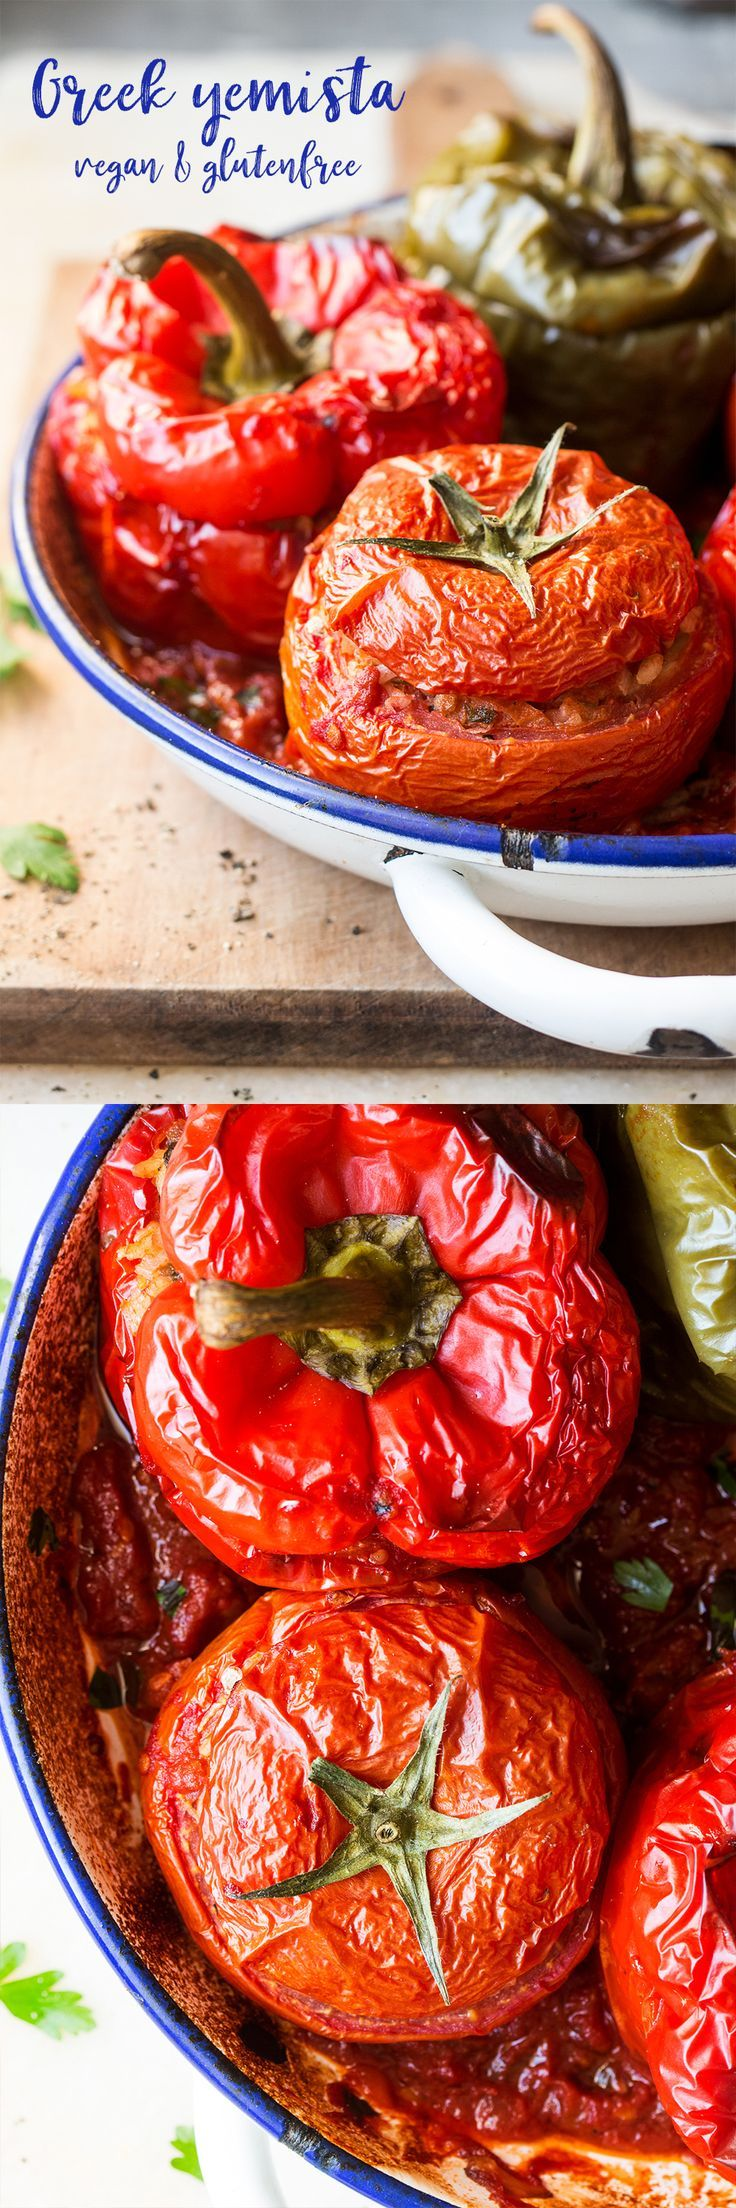 Vegan Recipes With Peppers